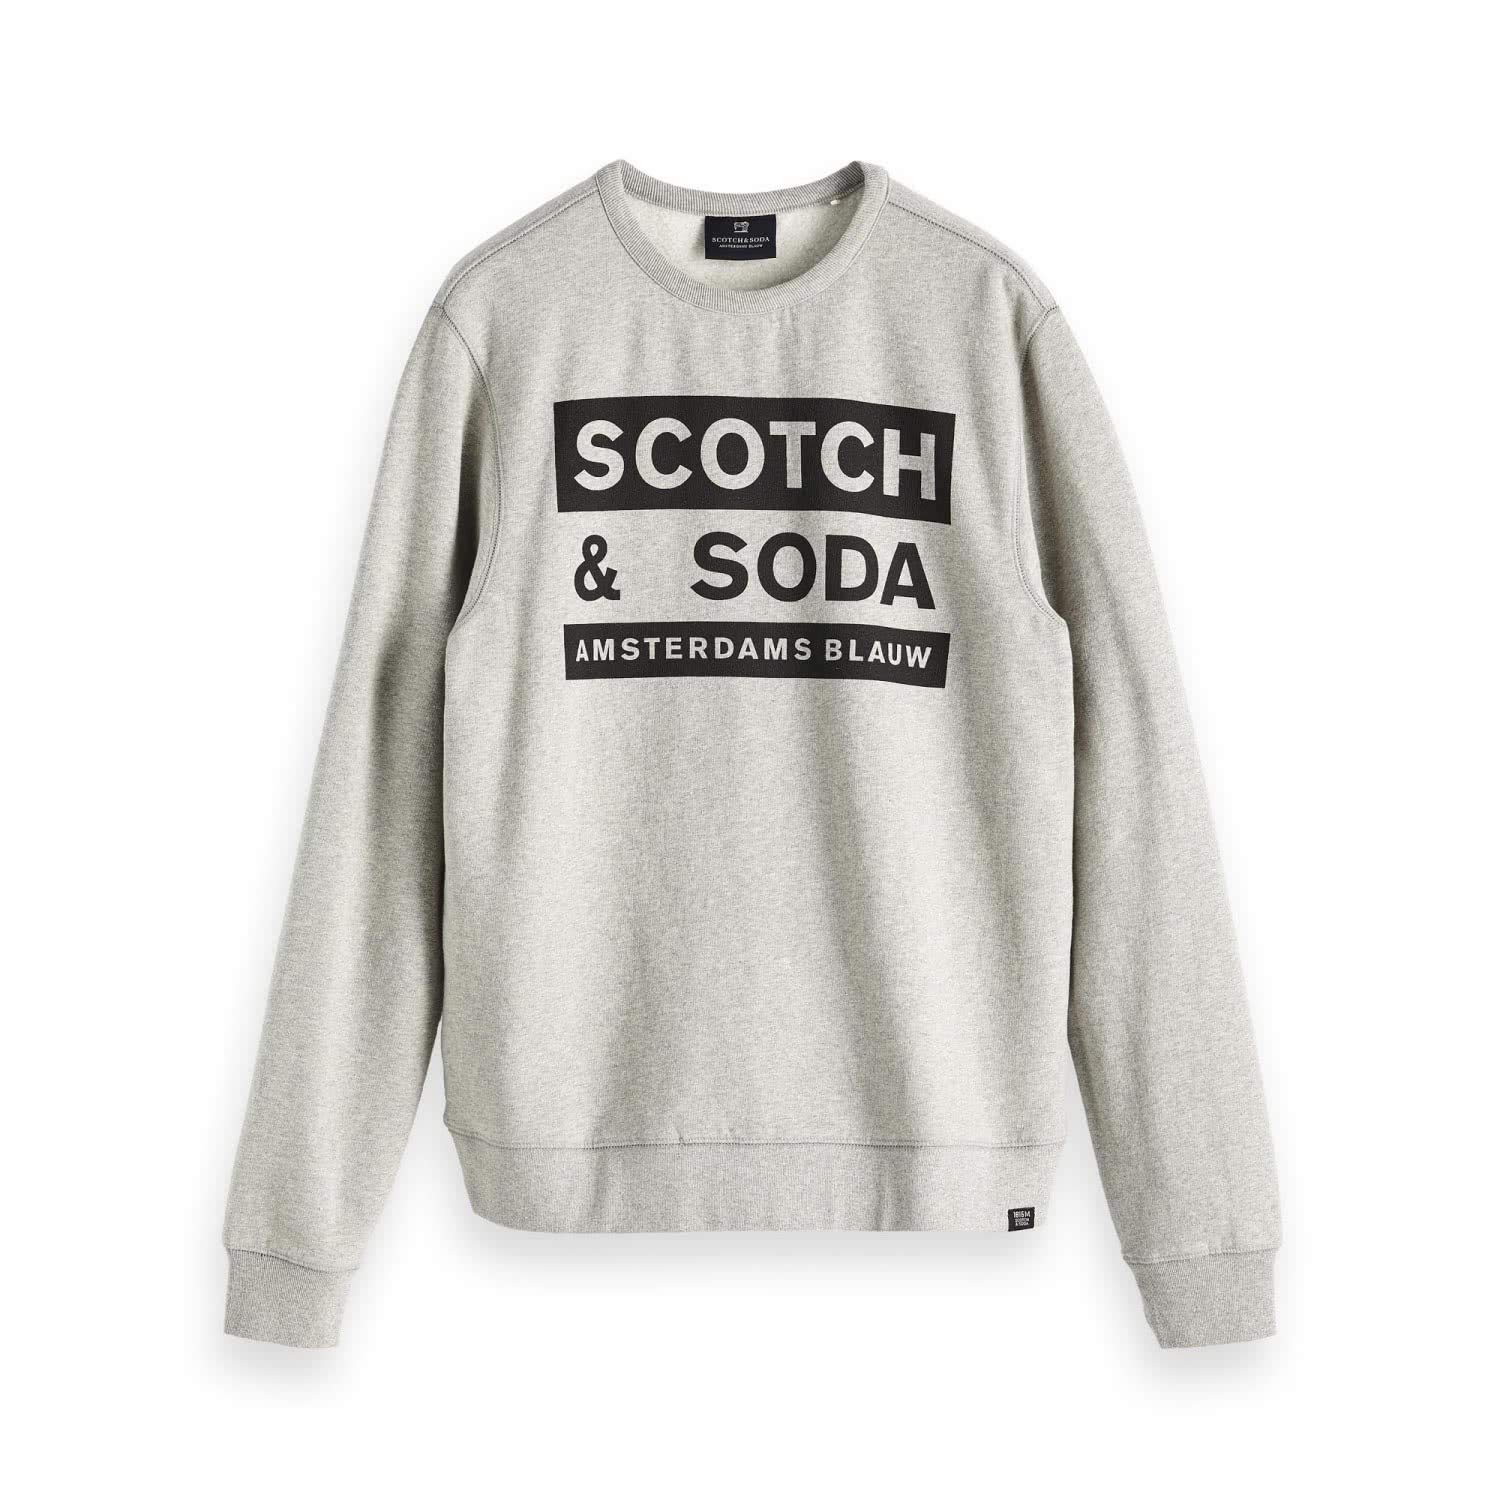 Scotch & Soda Men's Logo Text Sweatshirt 147628